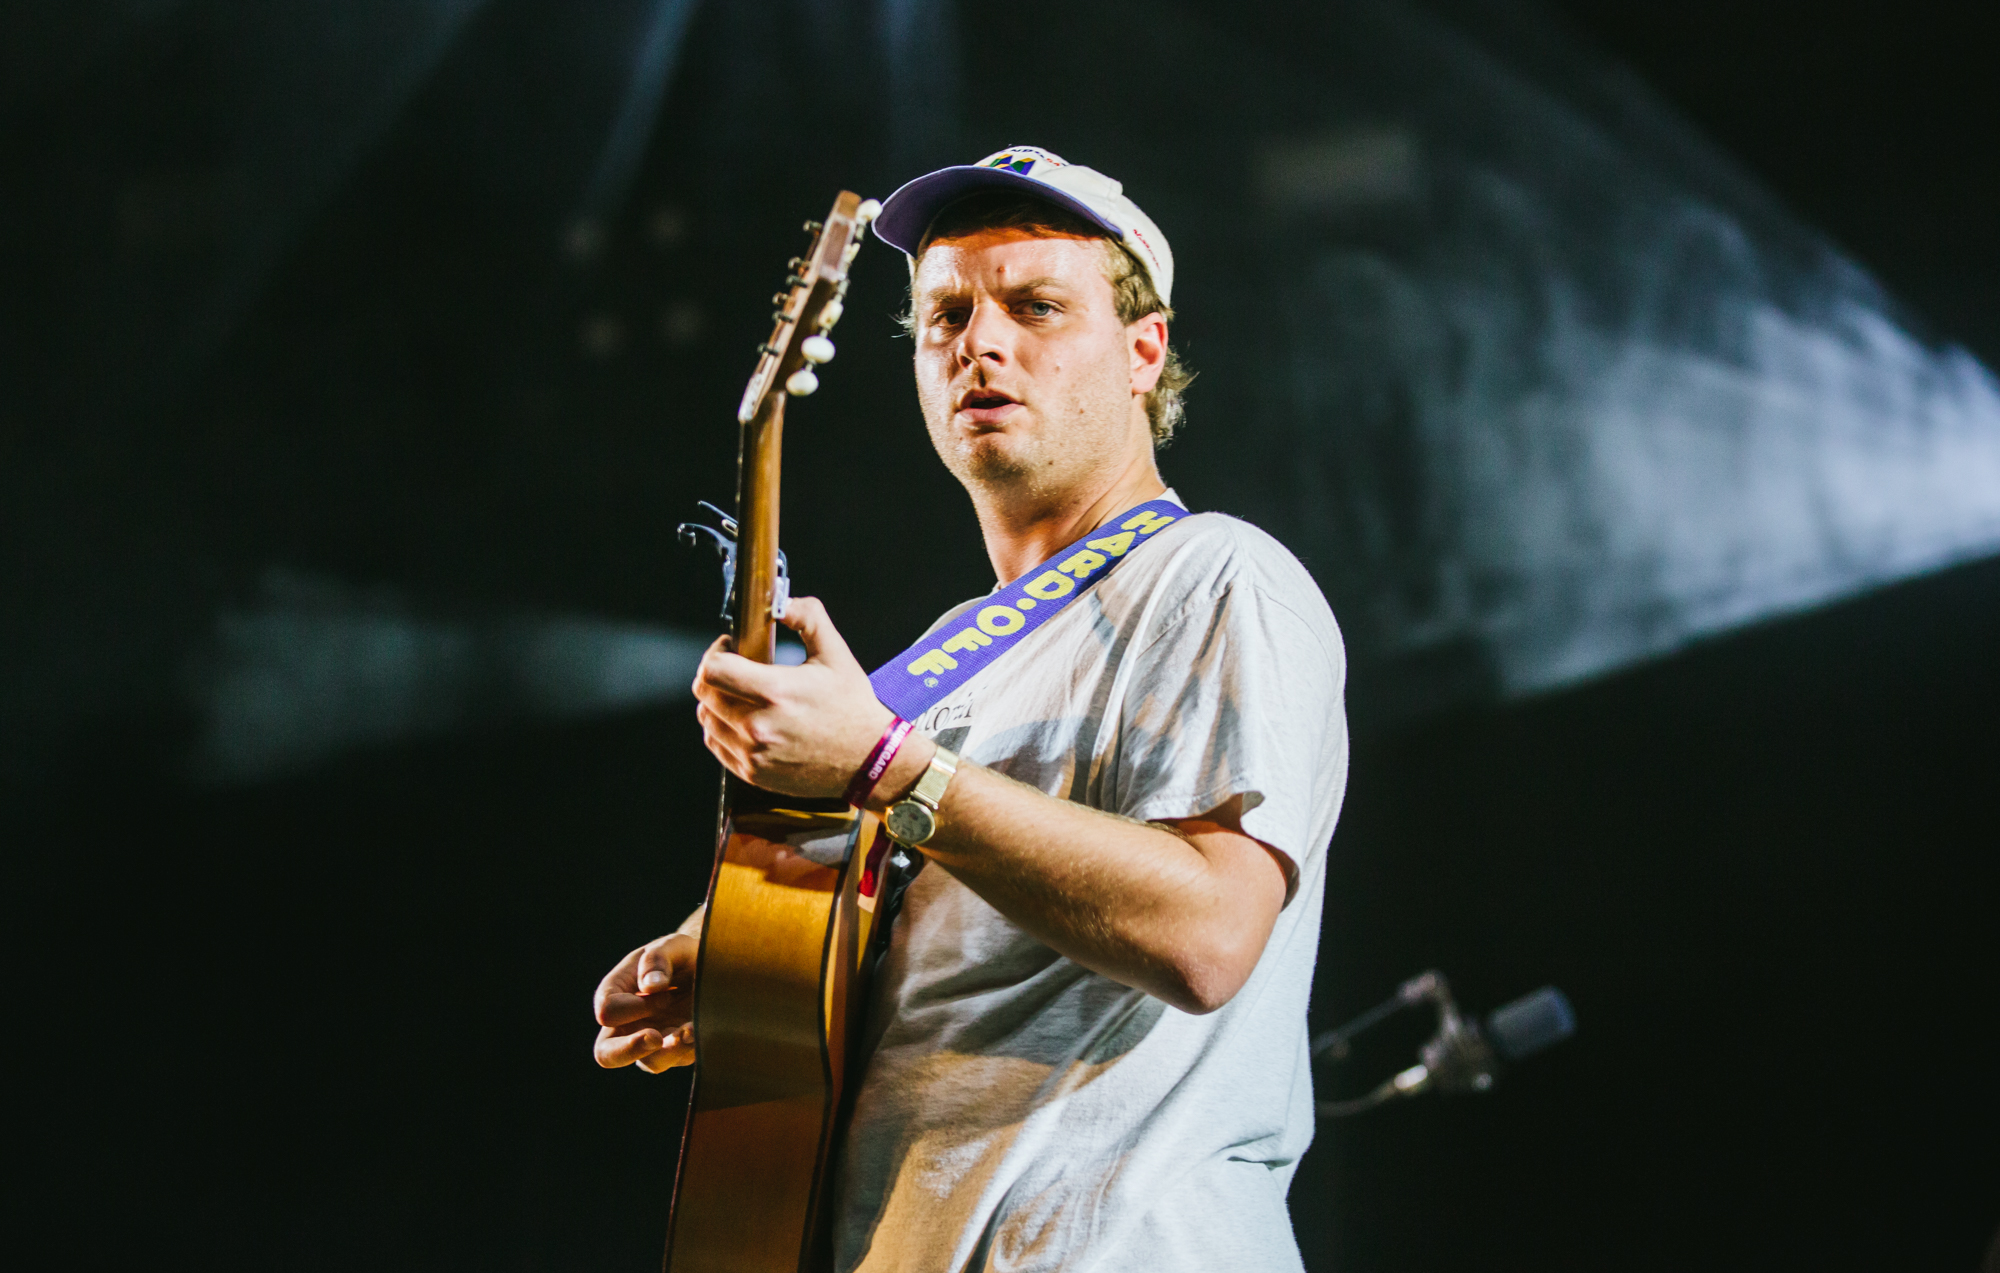 Mac DeMarco at Festival Beauregard 2019